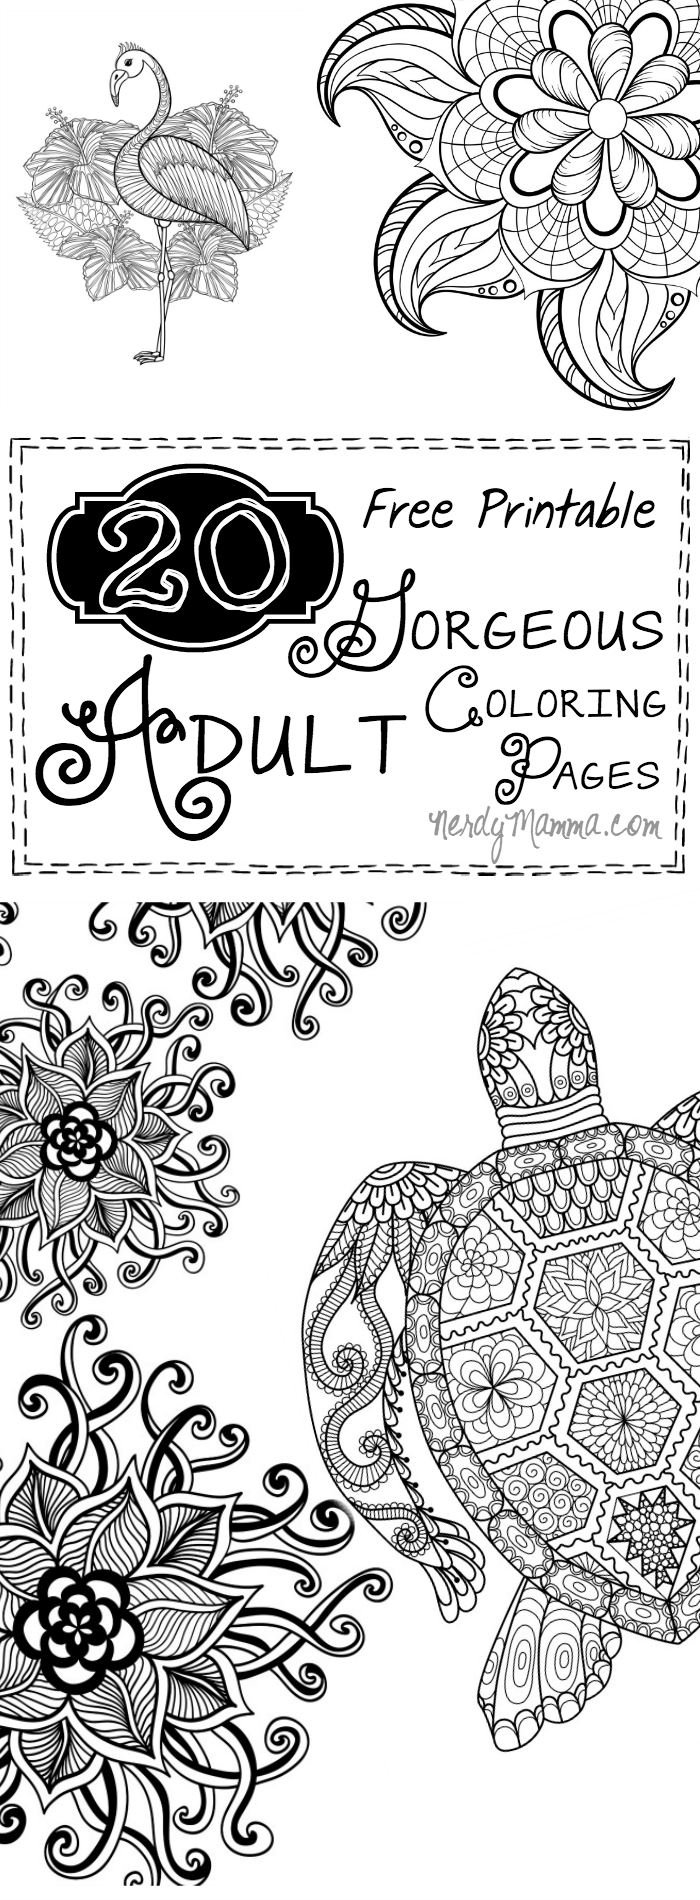 These 20 Free Printable GORGEOUS Adult Coloring Pages are so pretty ...